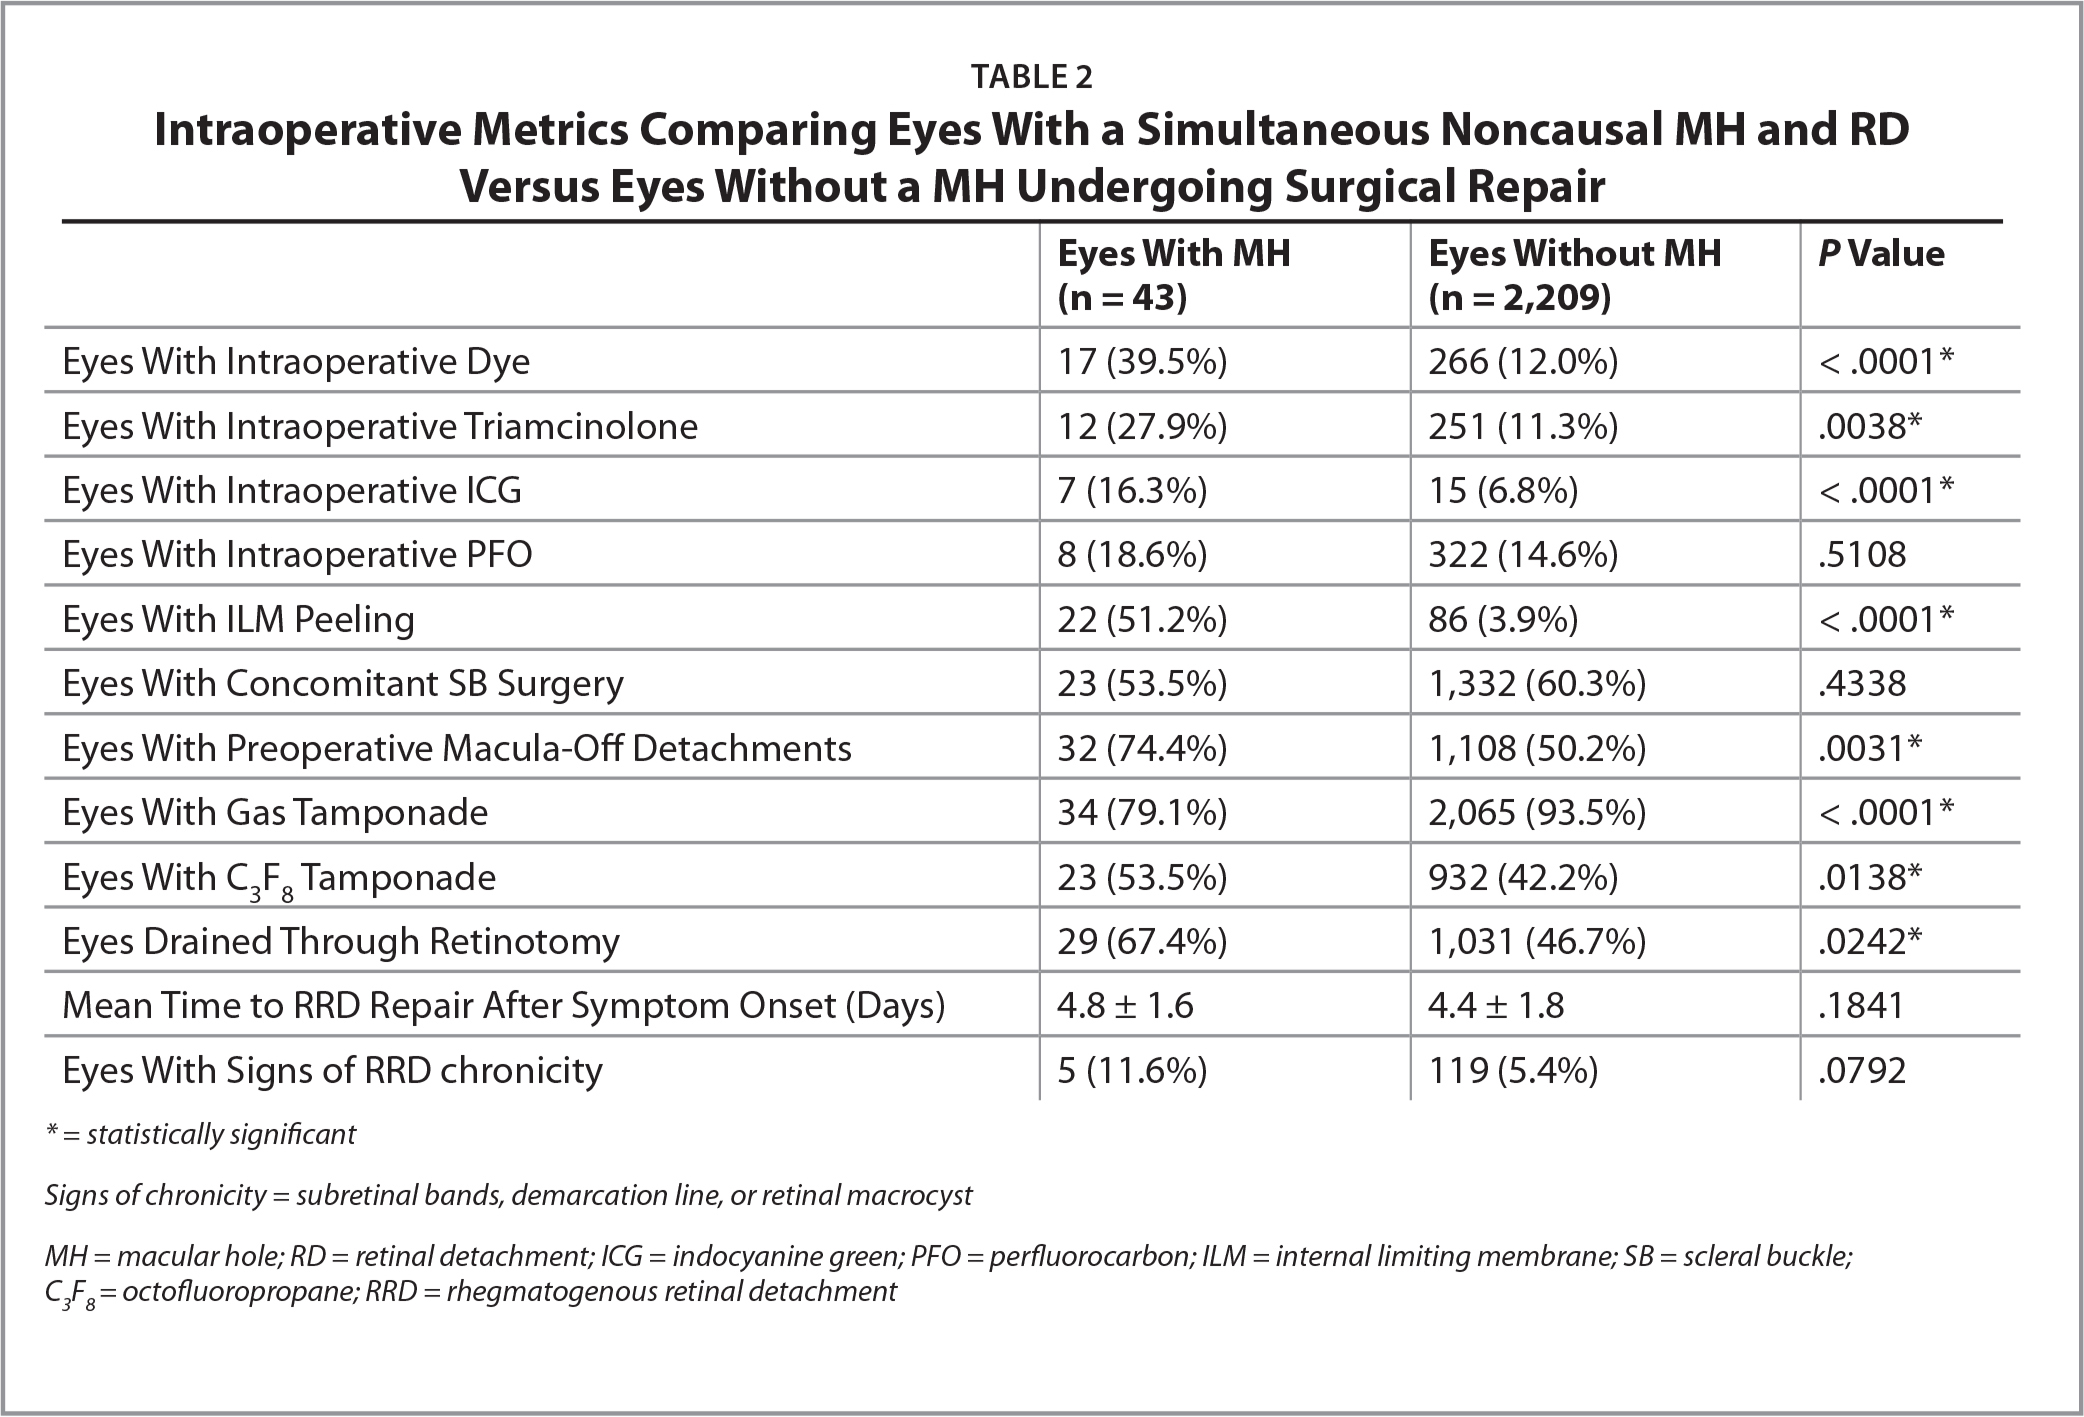 Intraoperative Metrics Comparing Eyes With a Simultaneous Noncausal MH and RD Versus Eyes Without a MH Undergoing Surgical Repair